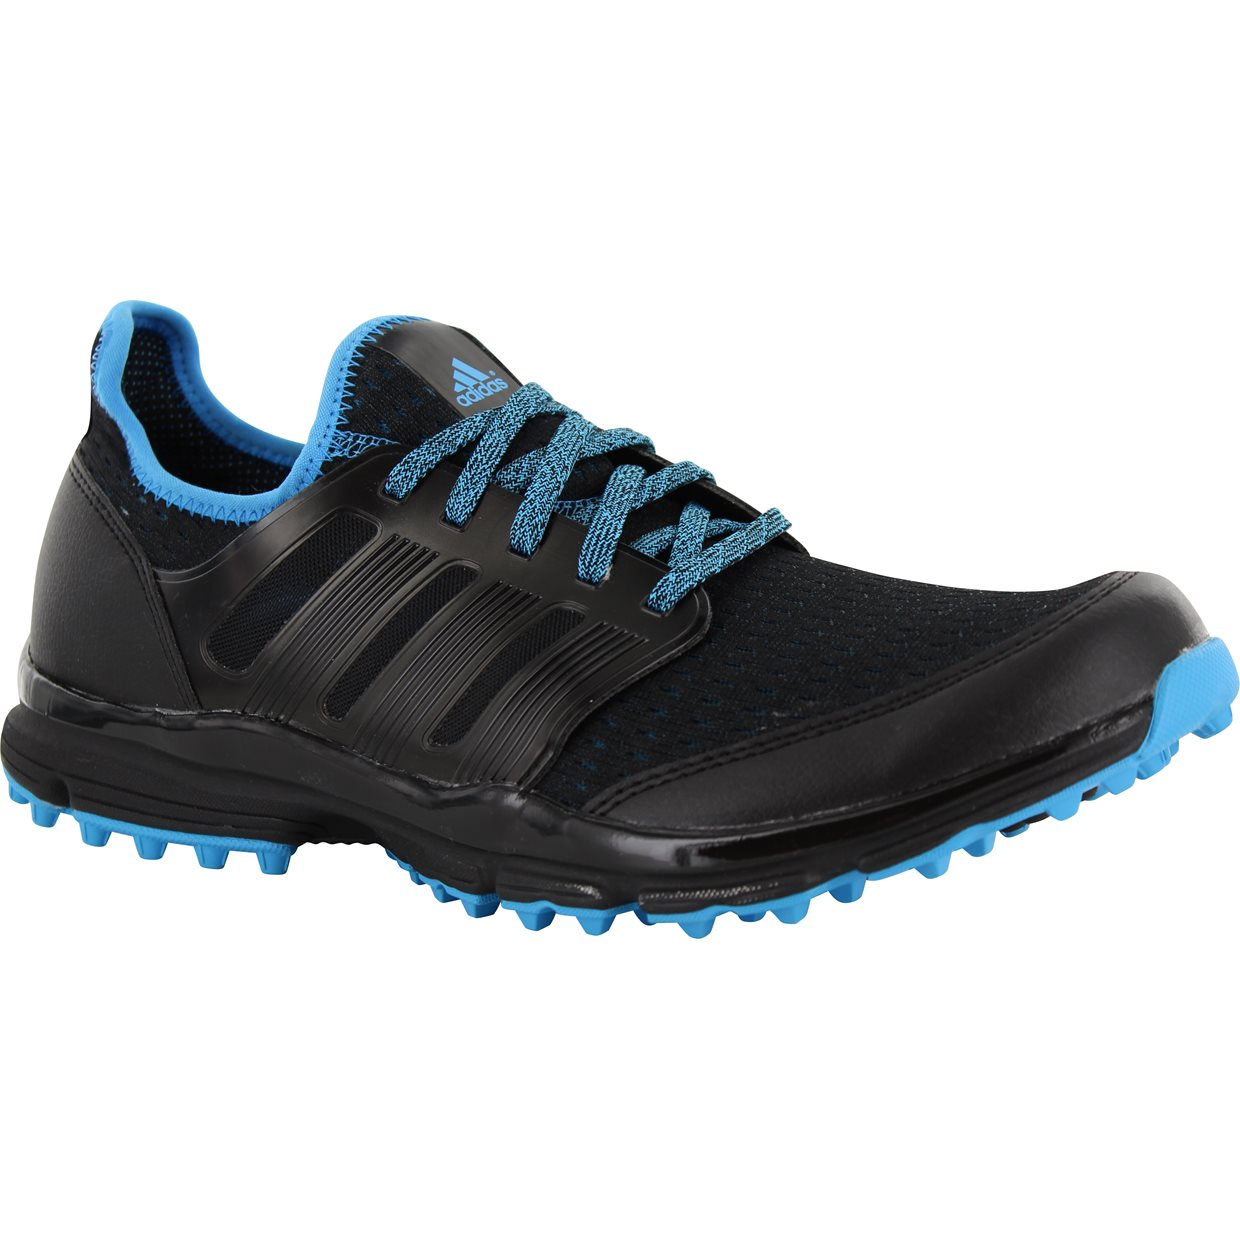 Adidas Climacool Golf Shoes Black